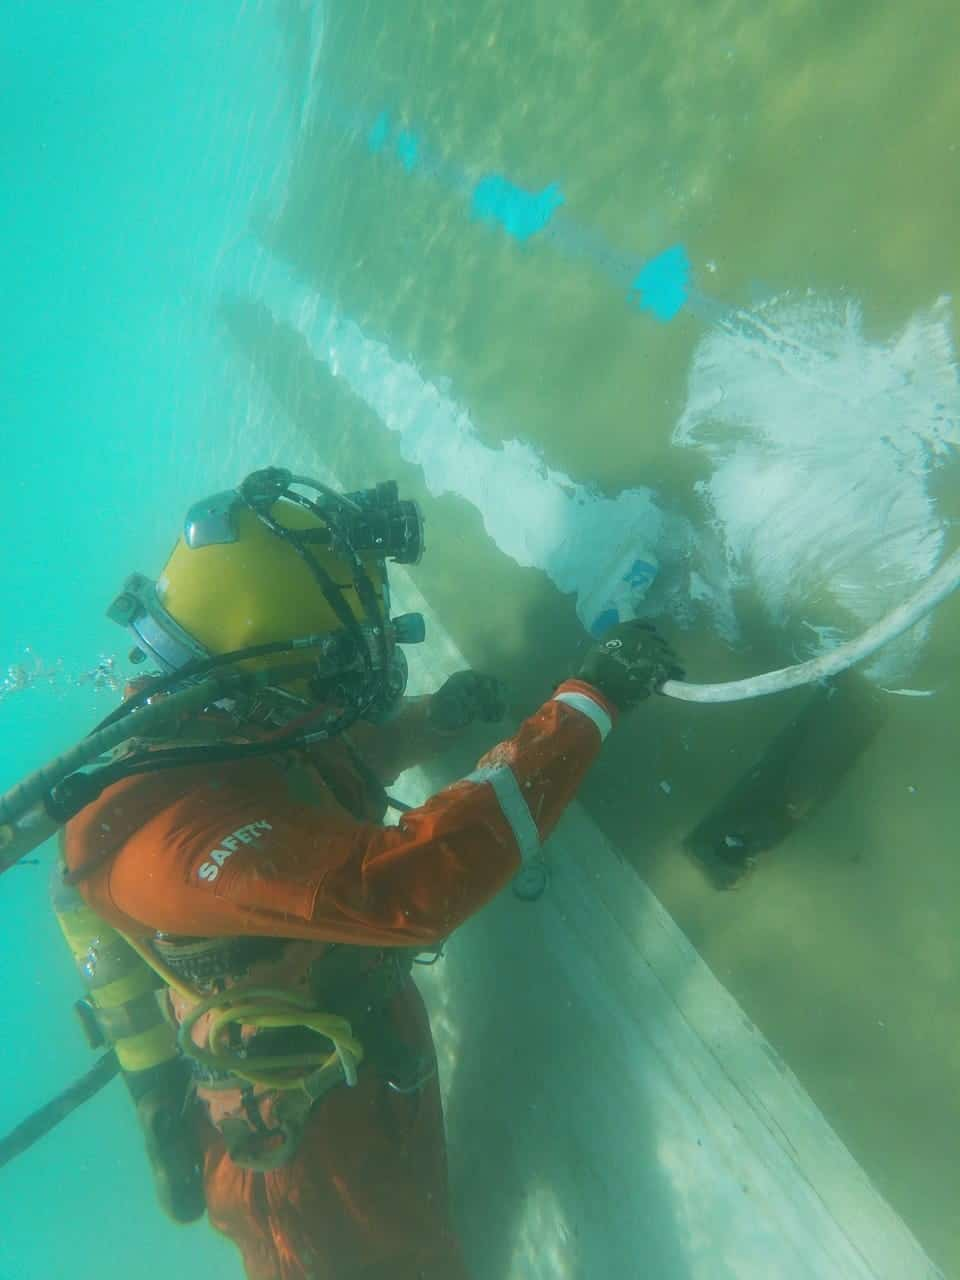 diver applying chemco coating to underwater substrate